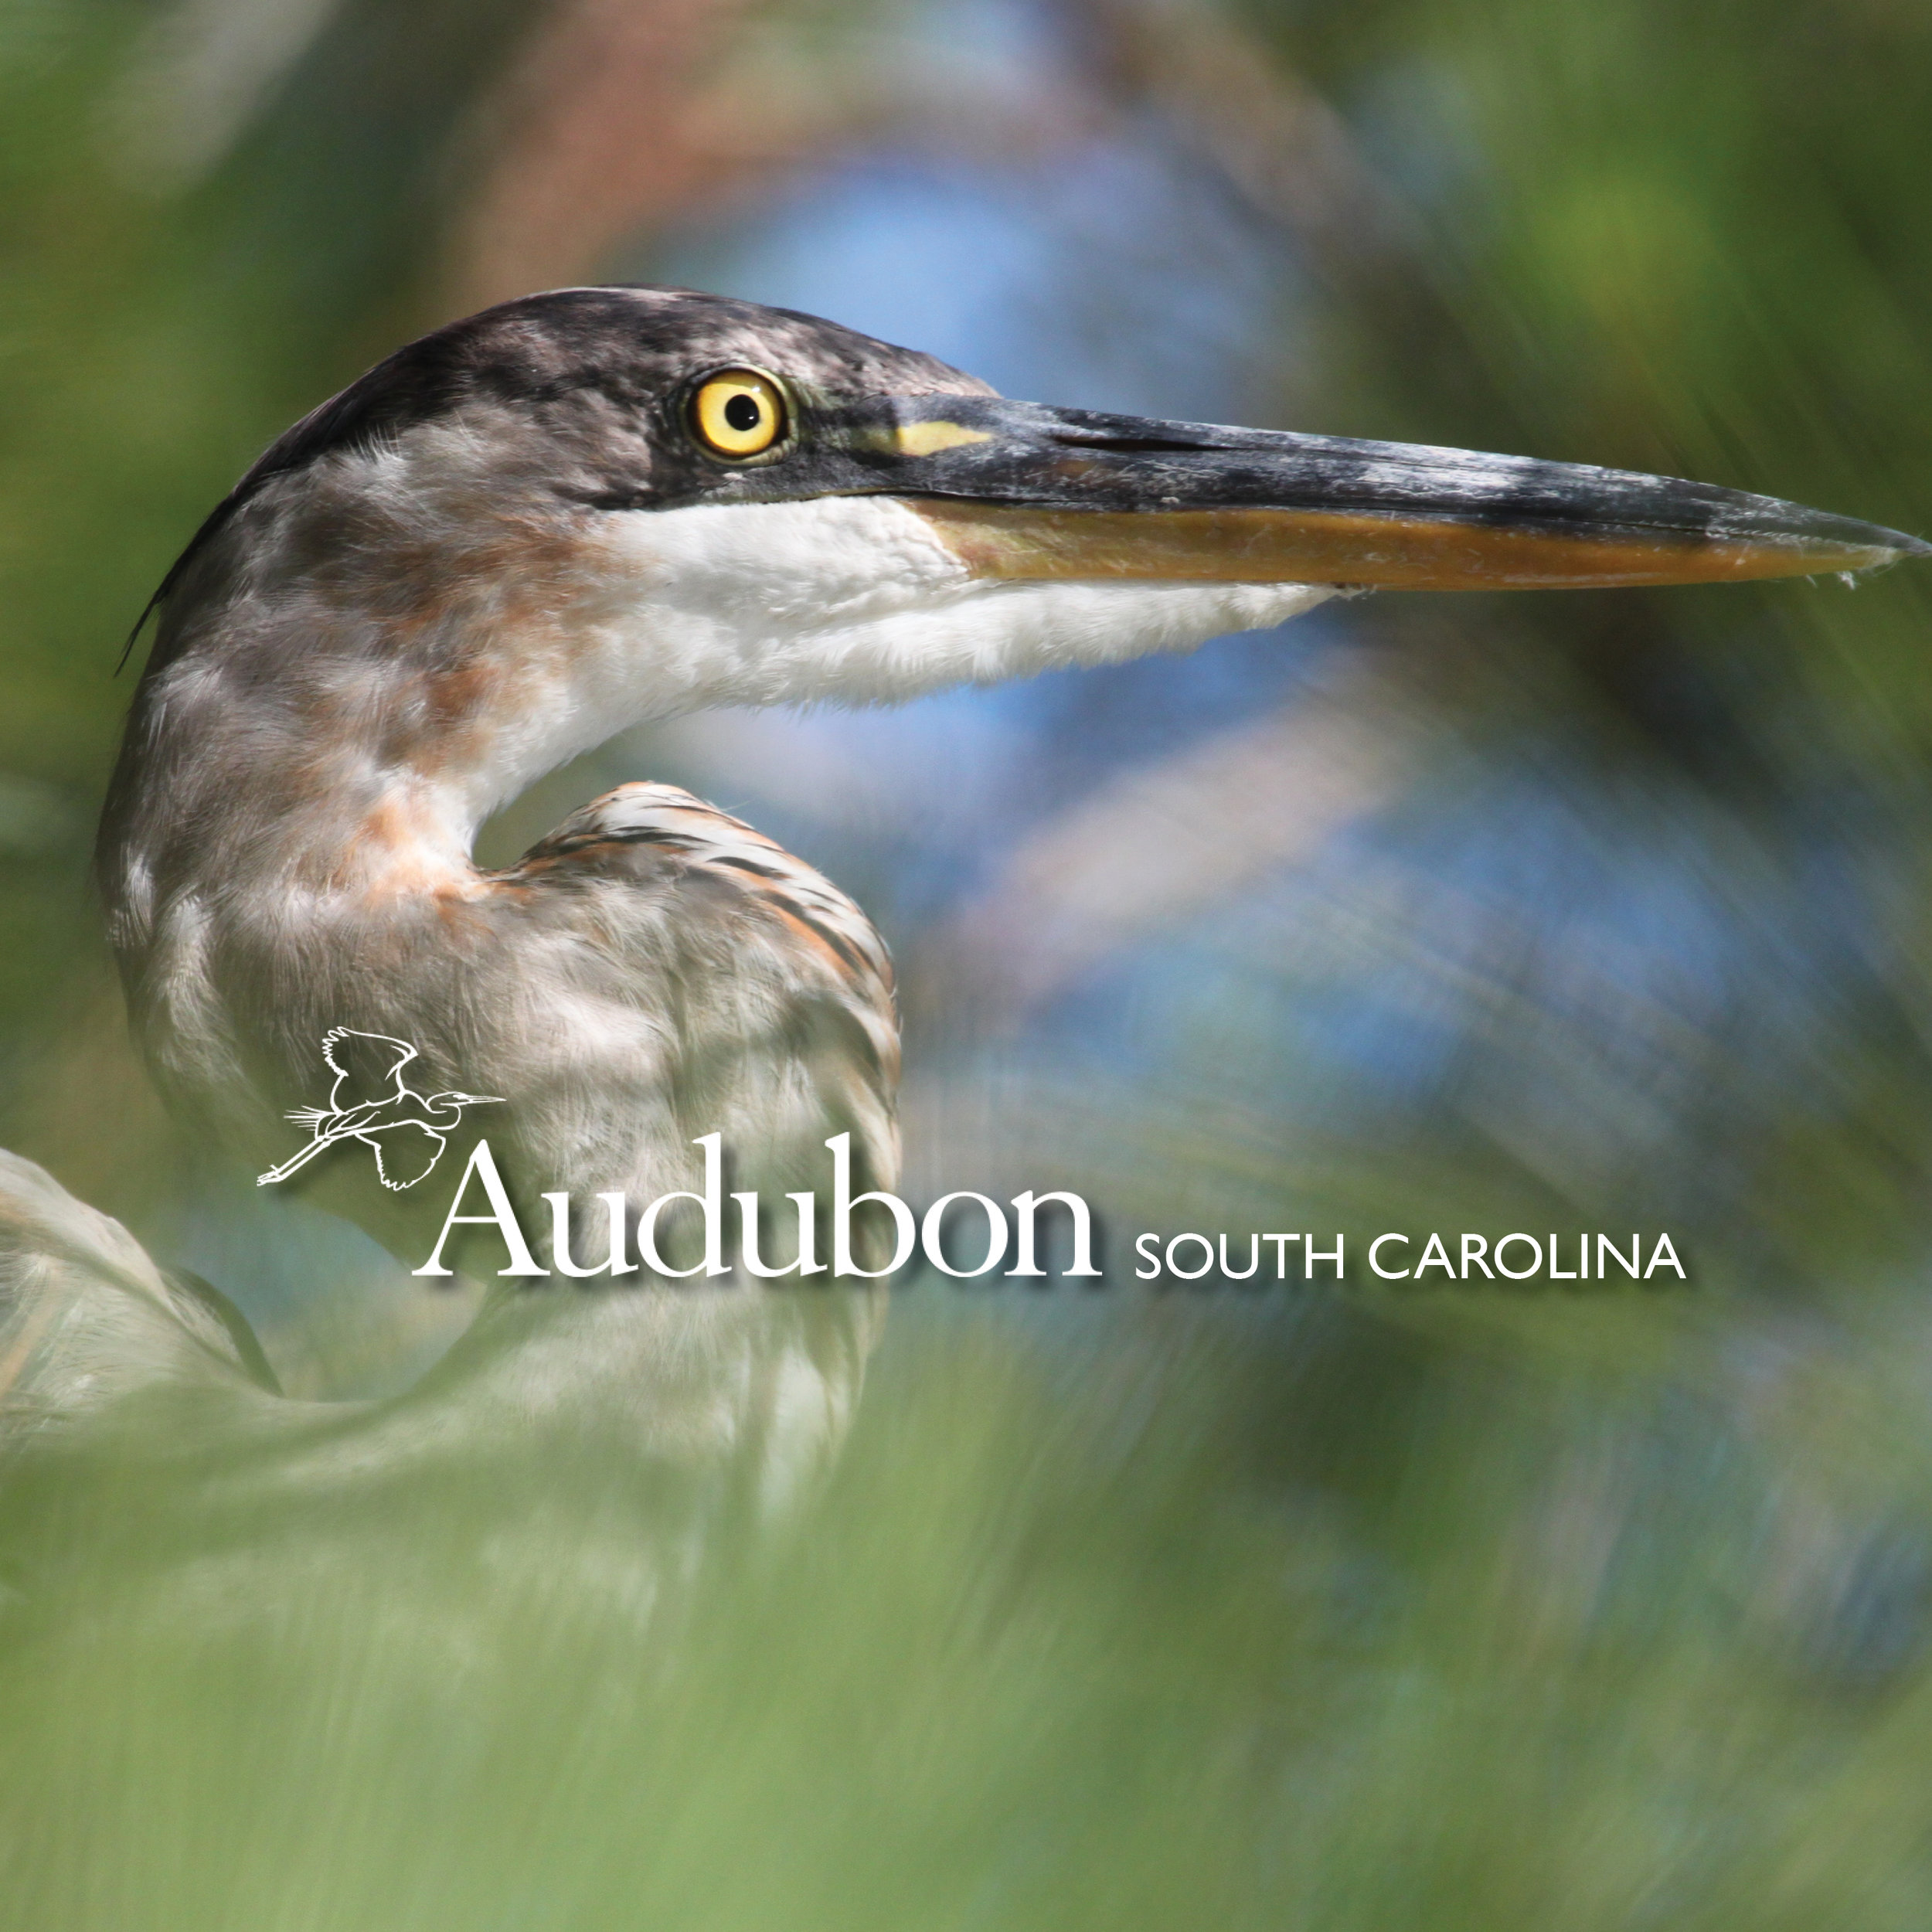 Audubon South Carolina